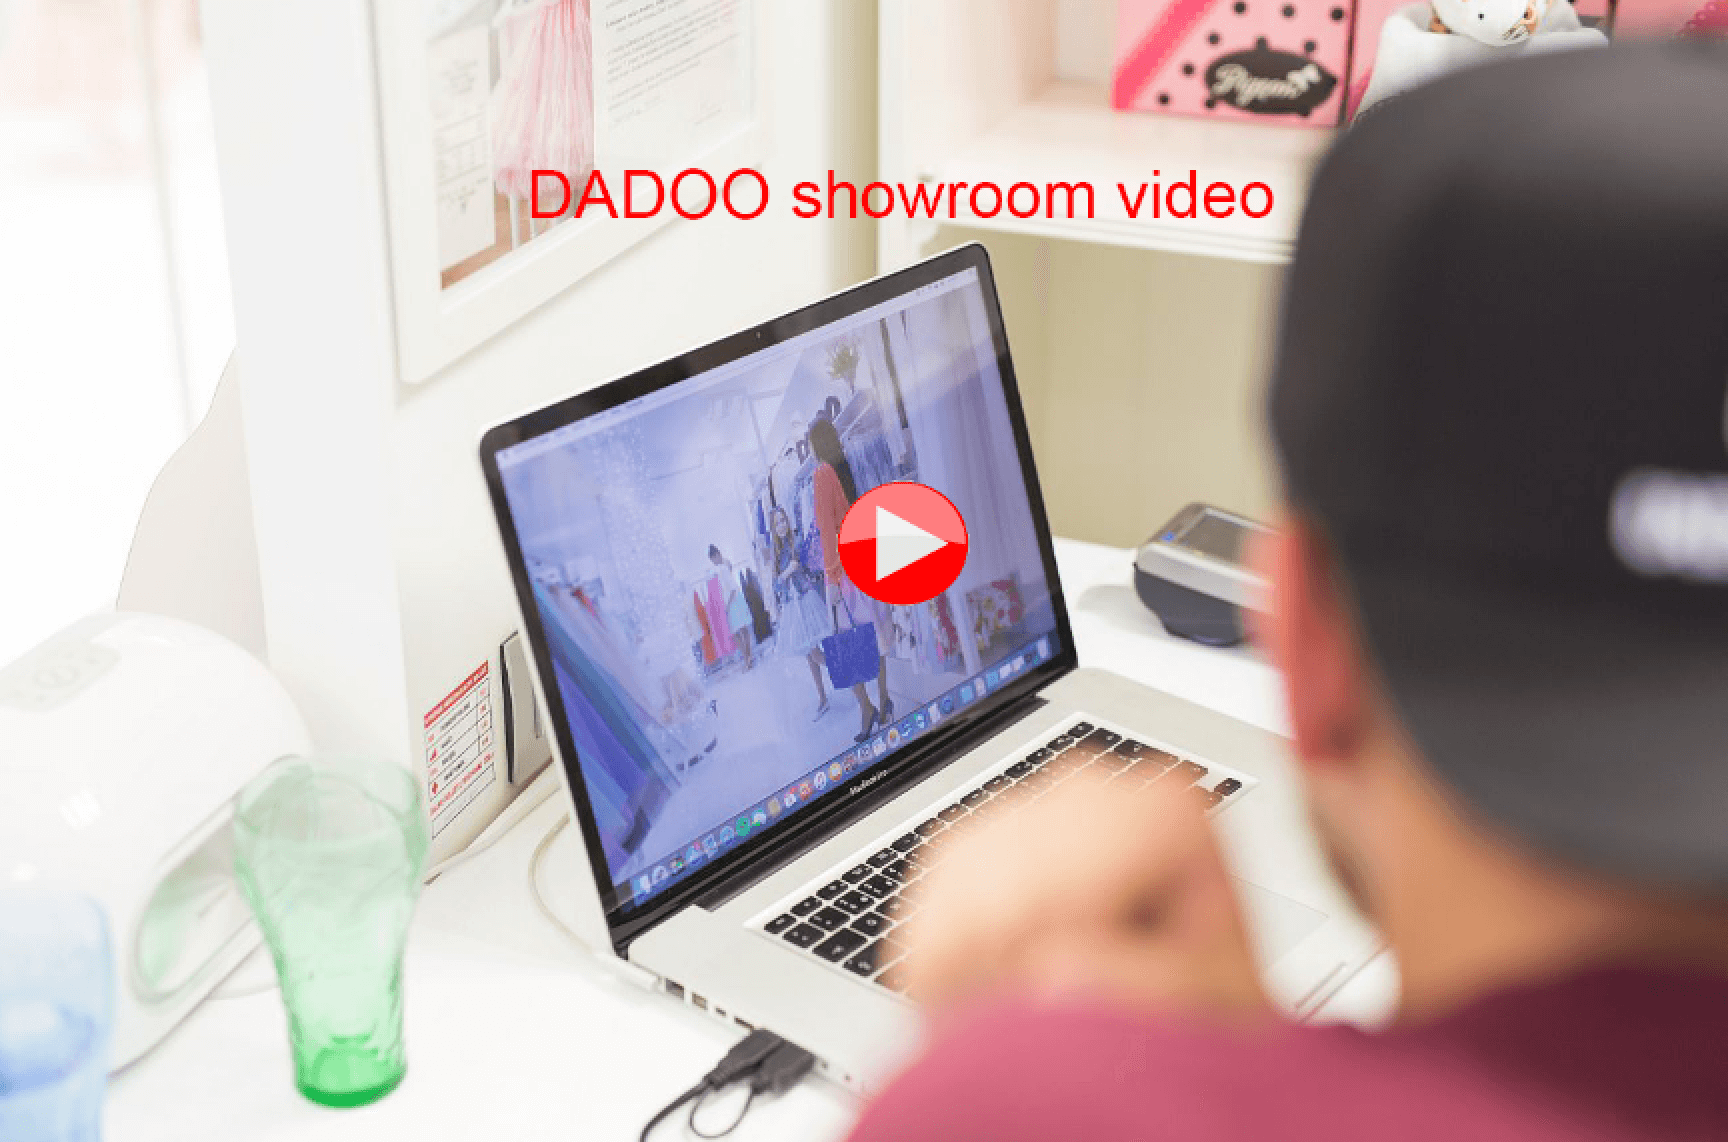 dadoo showroom video